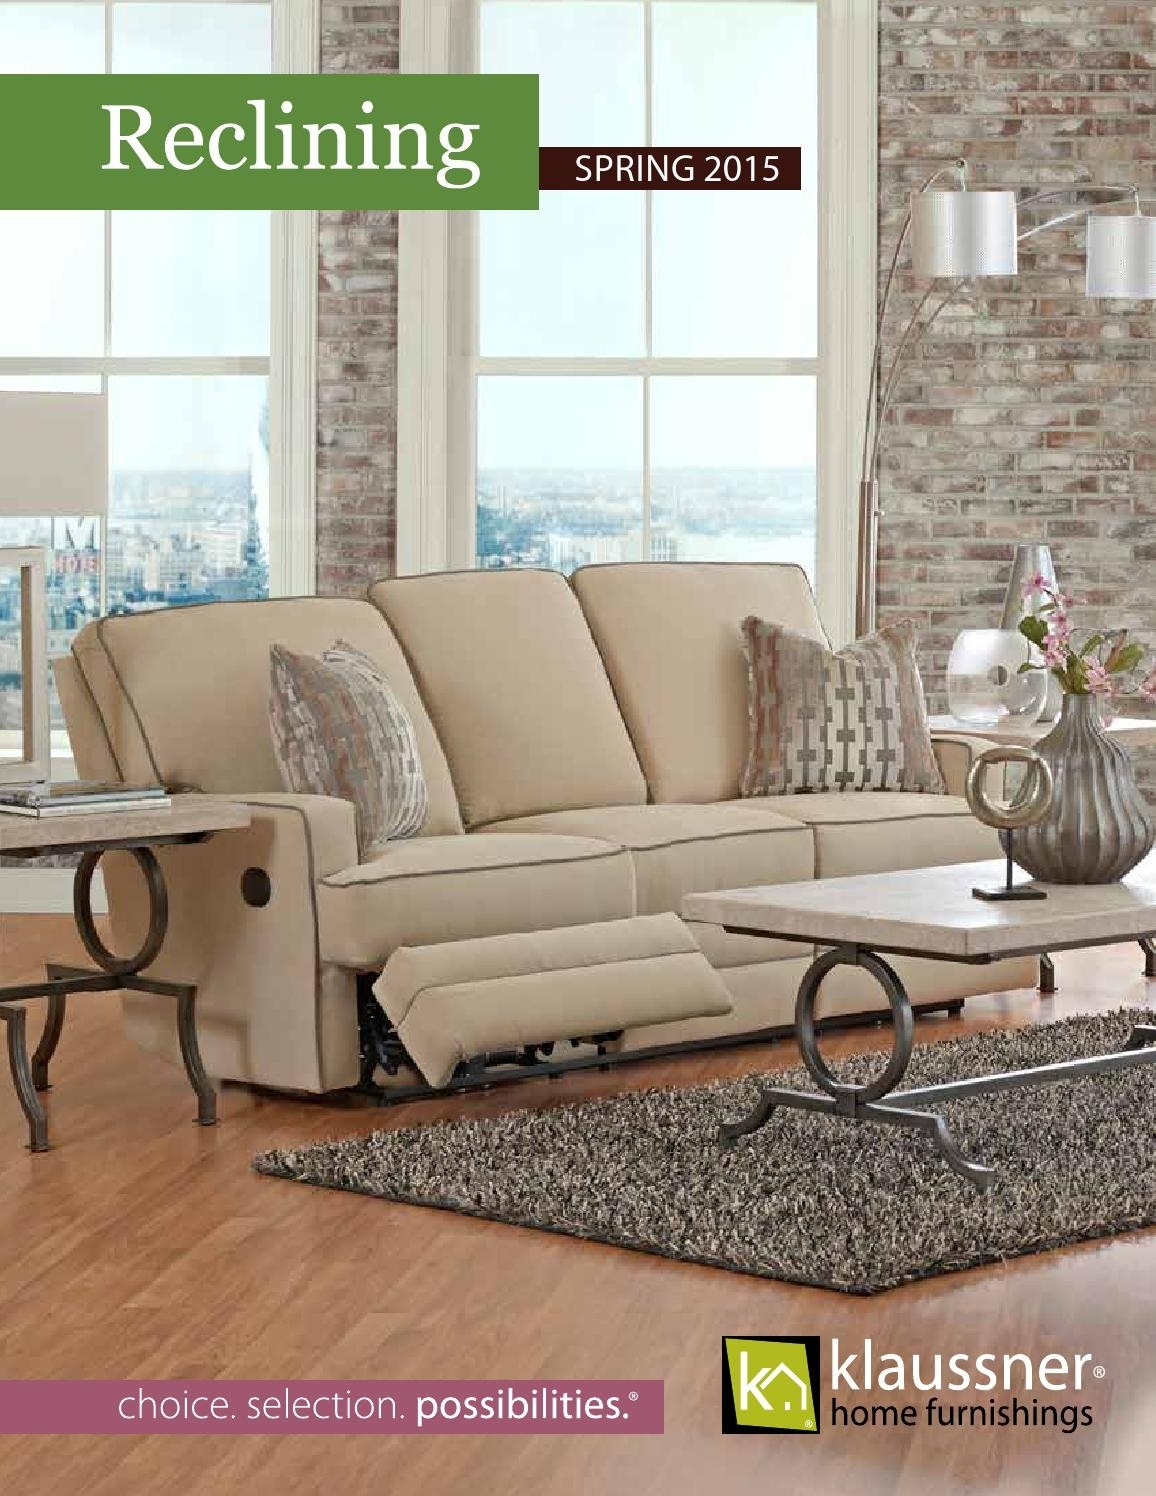 Reclining 2015 Catalogklaussner Home Furnishings - Issuu with Travis Cognac Leather 6 Piece Power Reclining Sectionals With Power Headrest & Usb (Image 19 of 30)